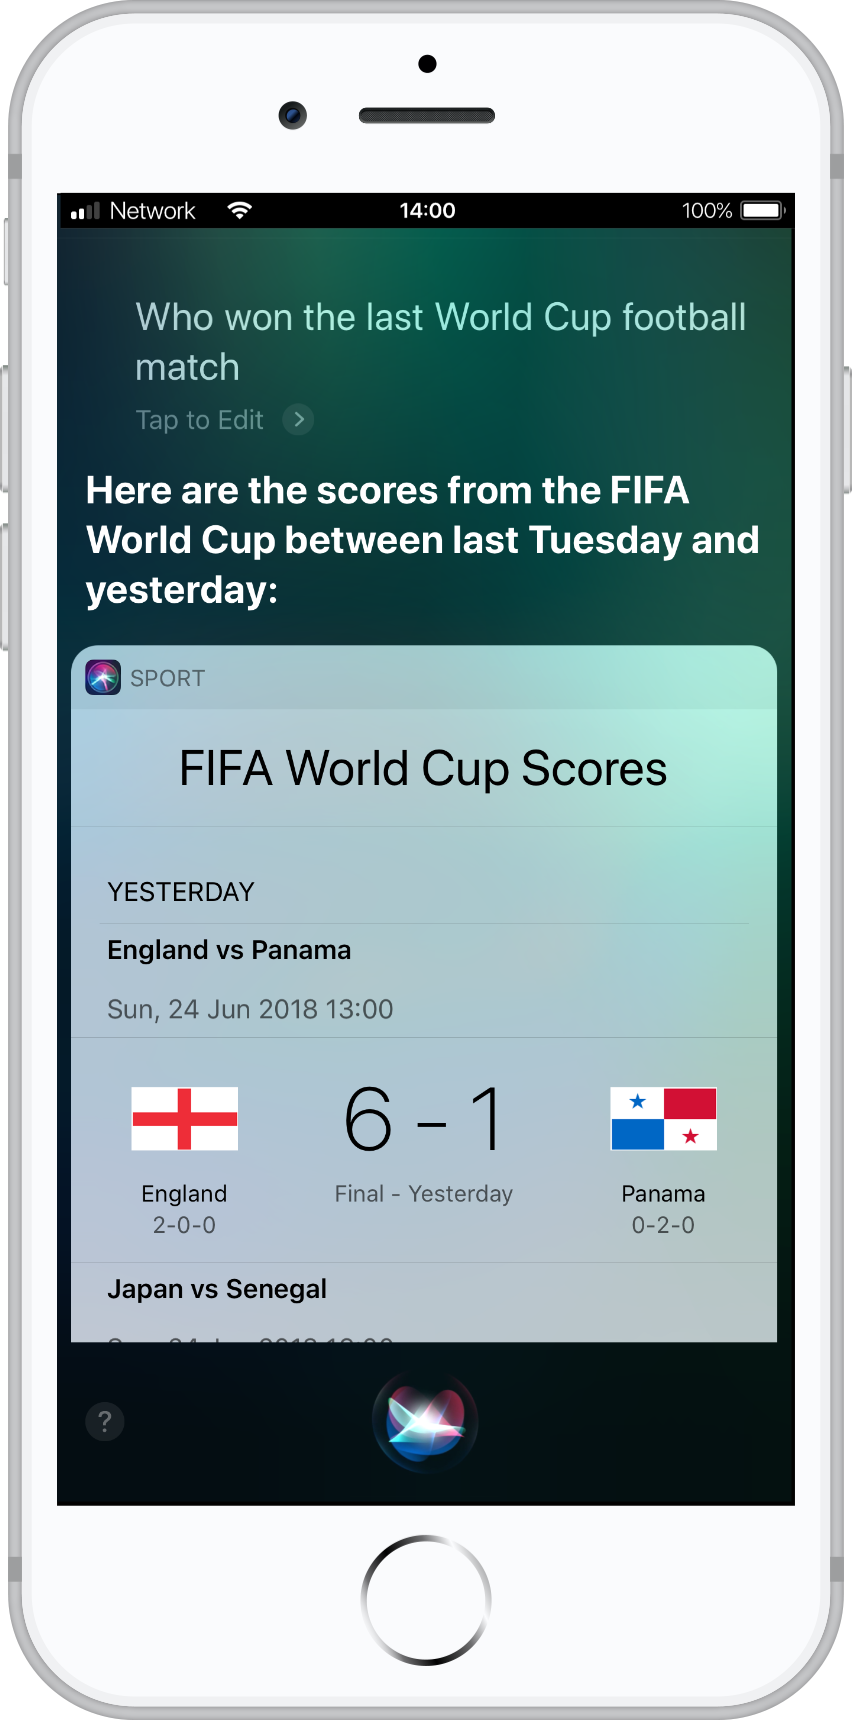 Who won the last World Cup football match?